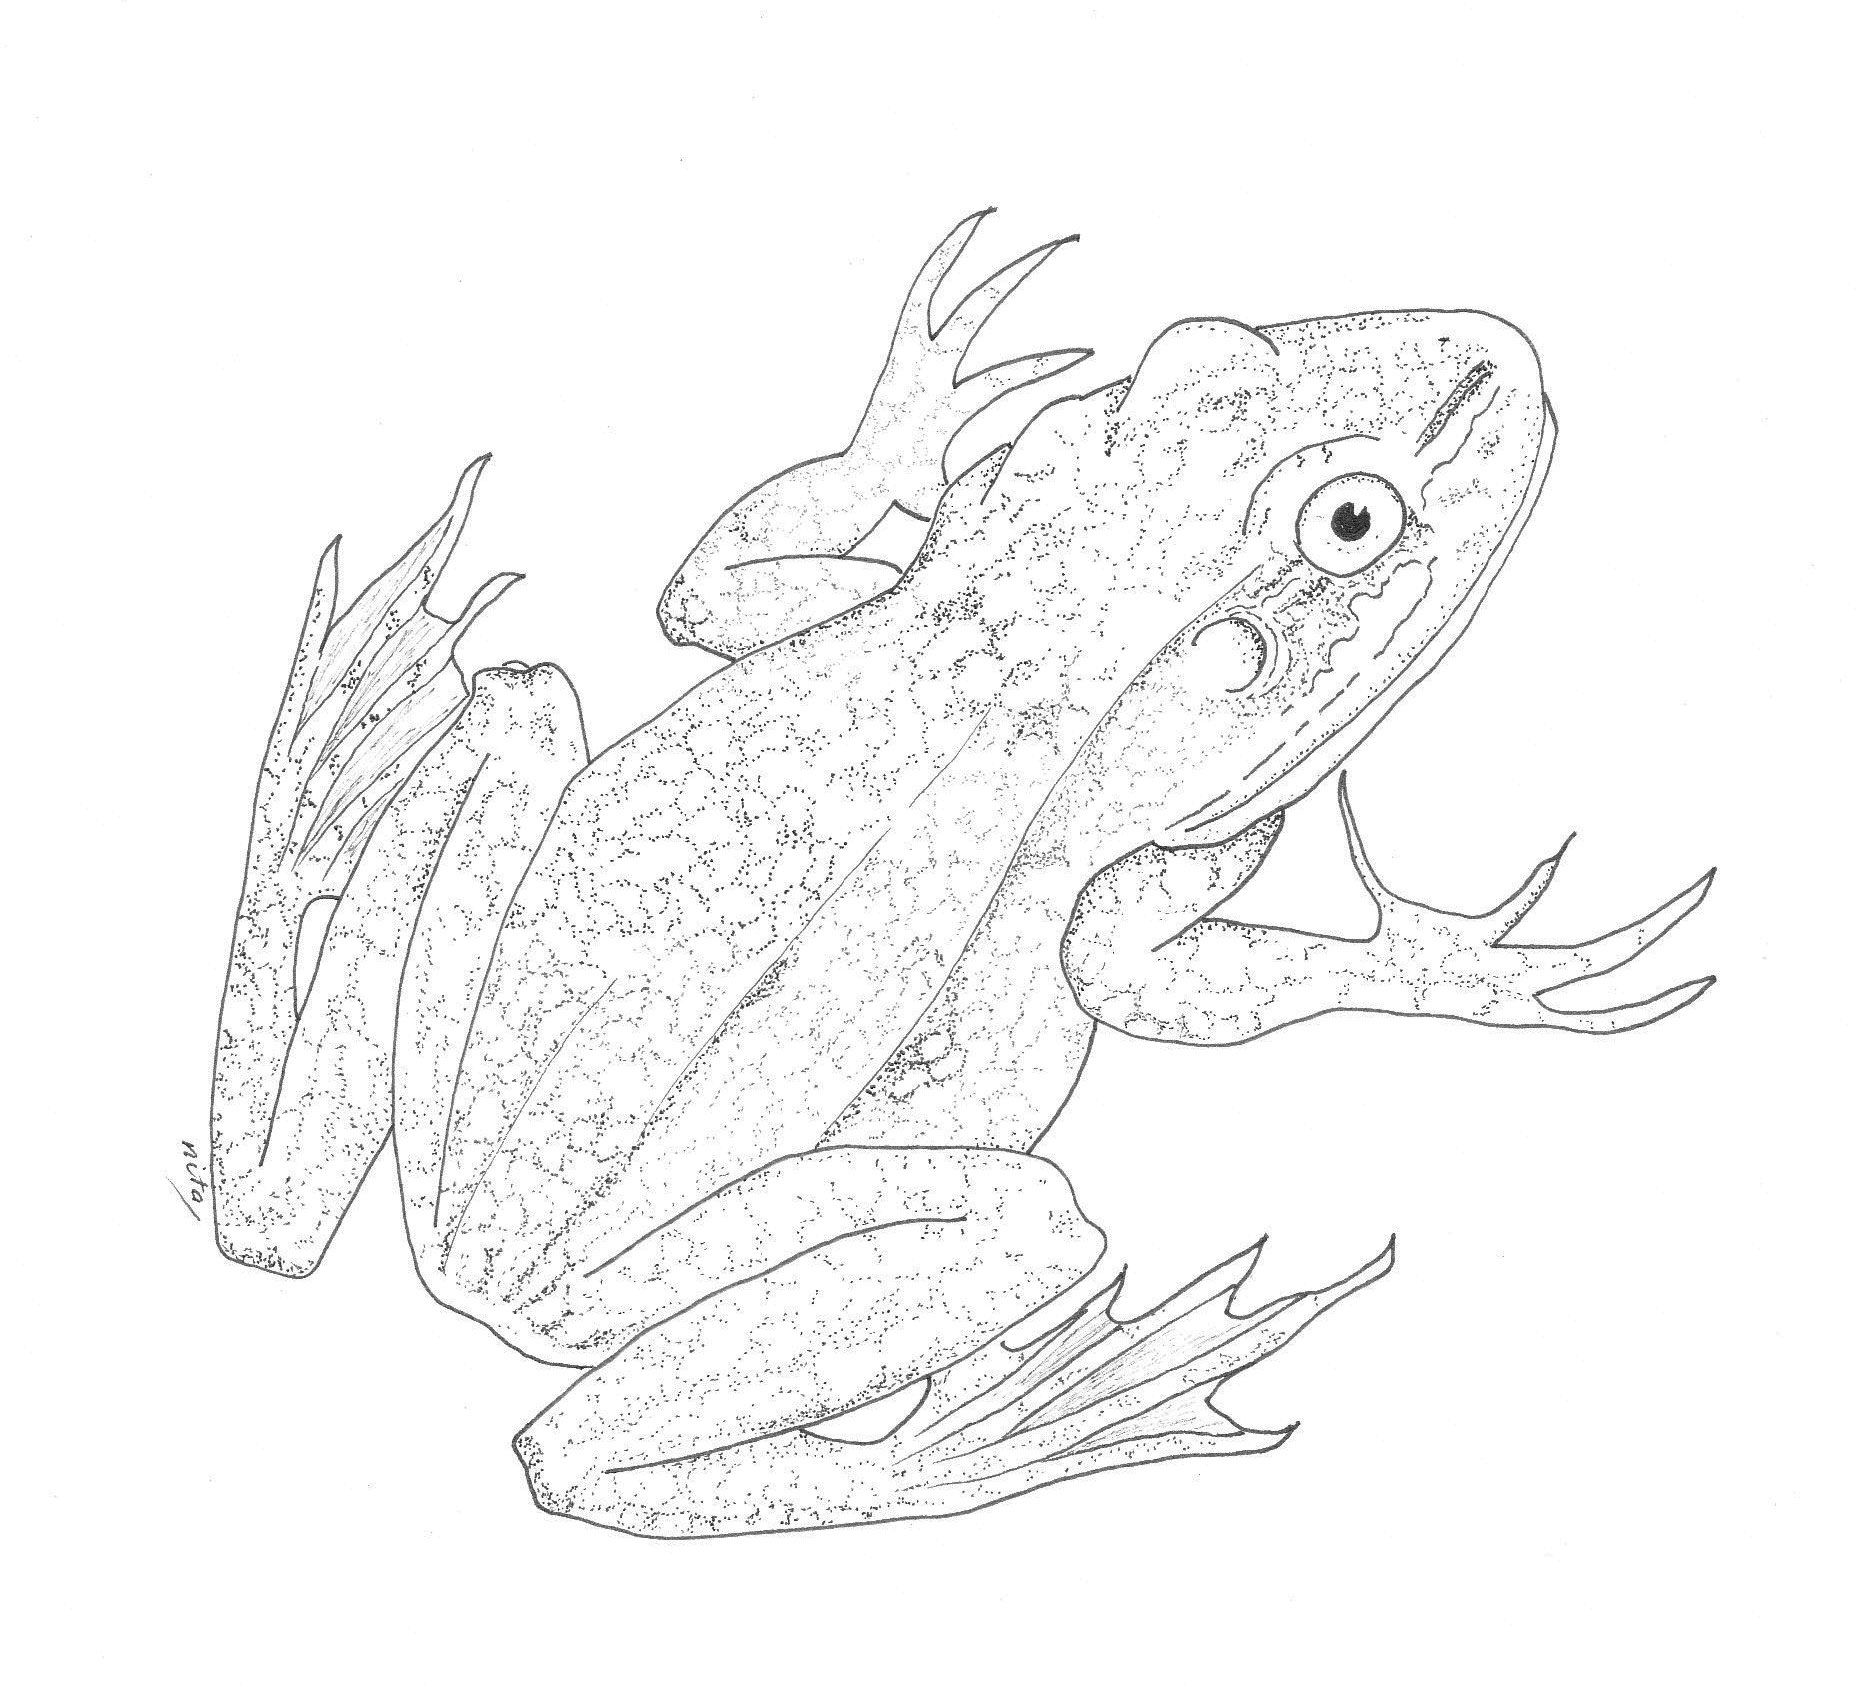 frog-cropped-for-web.jpg (1864×1687) | draw .. a frog | Pinterest